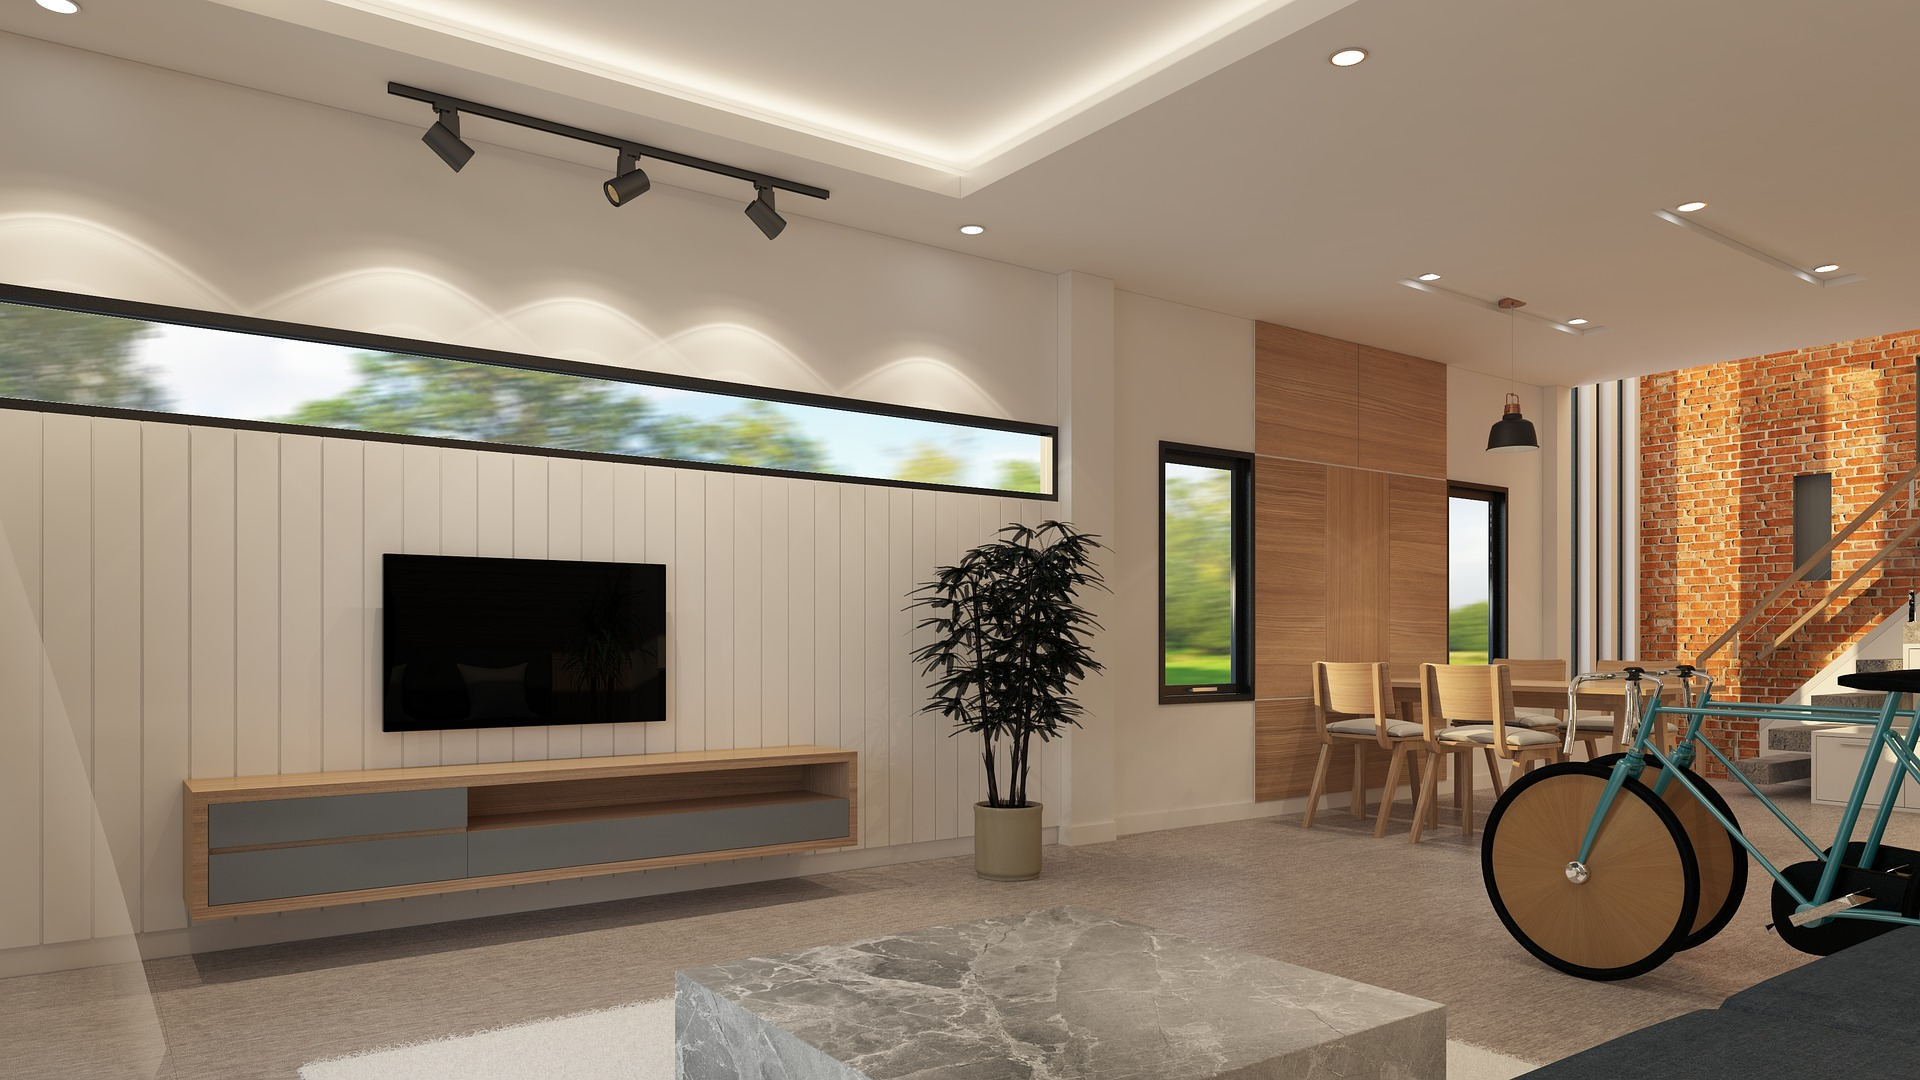 Things to know about basic interior design free clubs for Interior design things